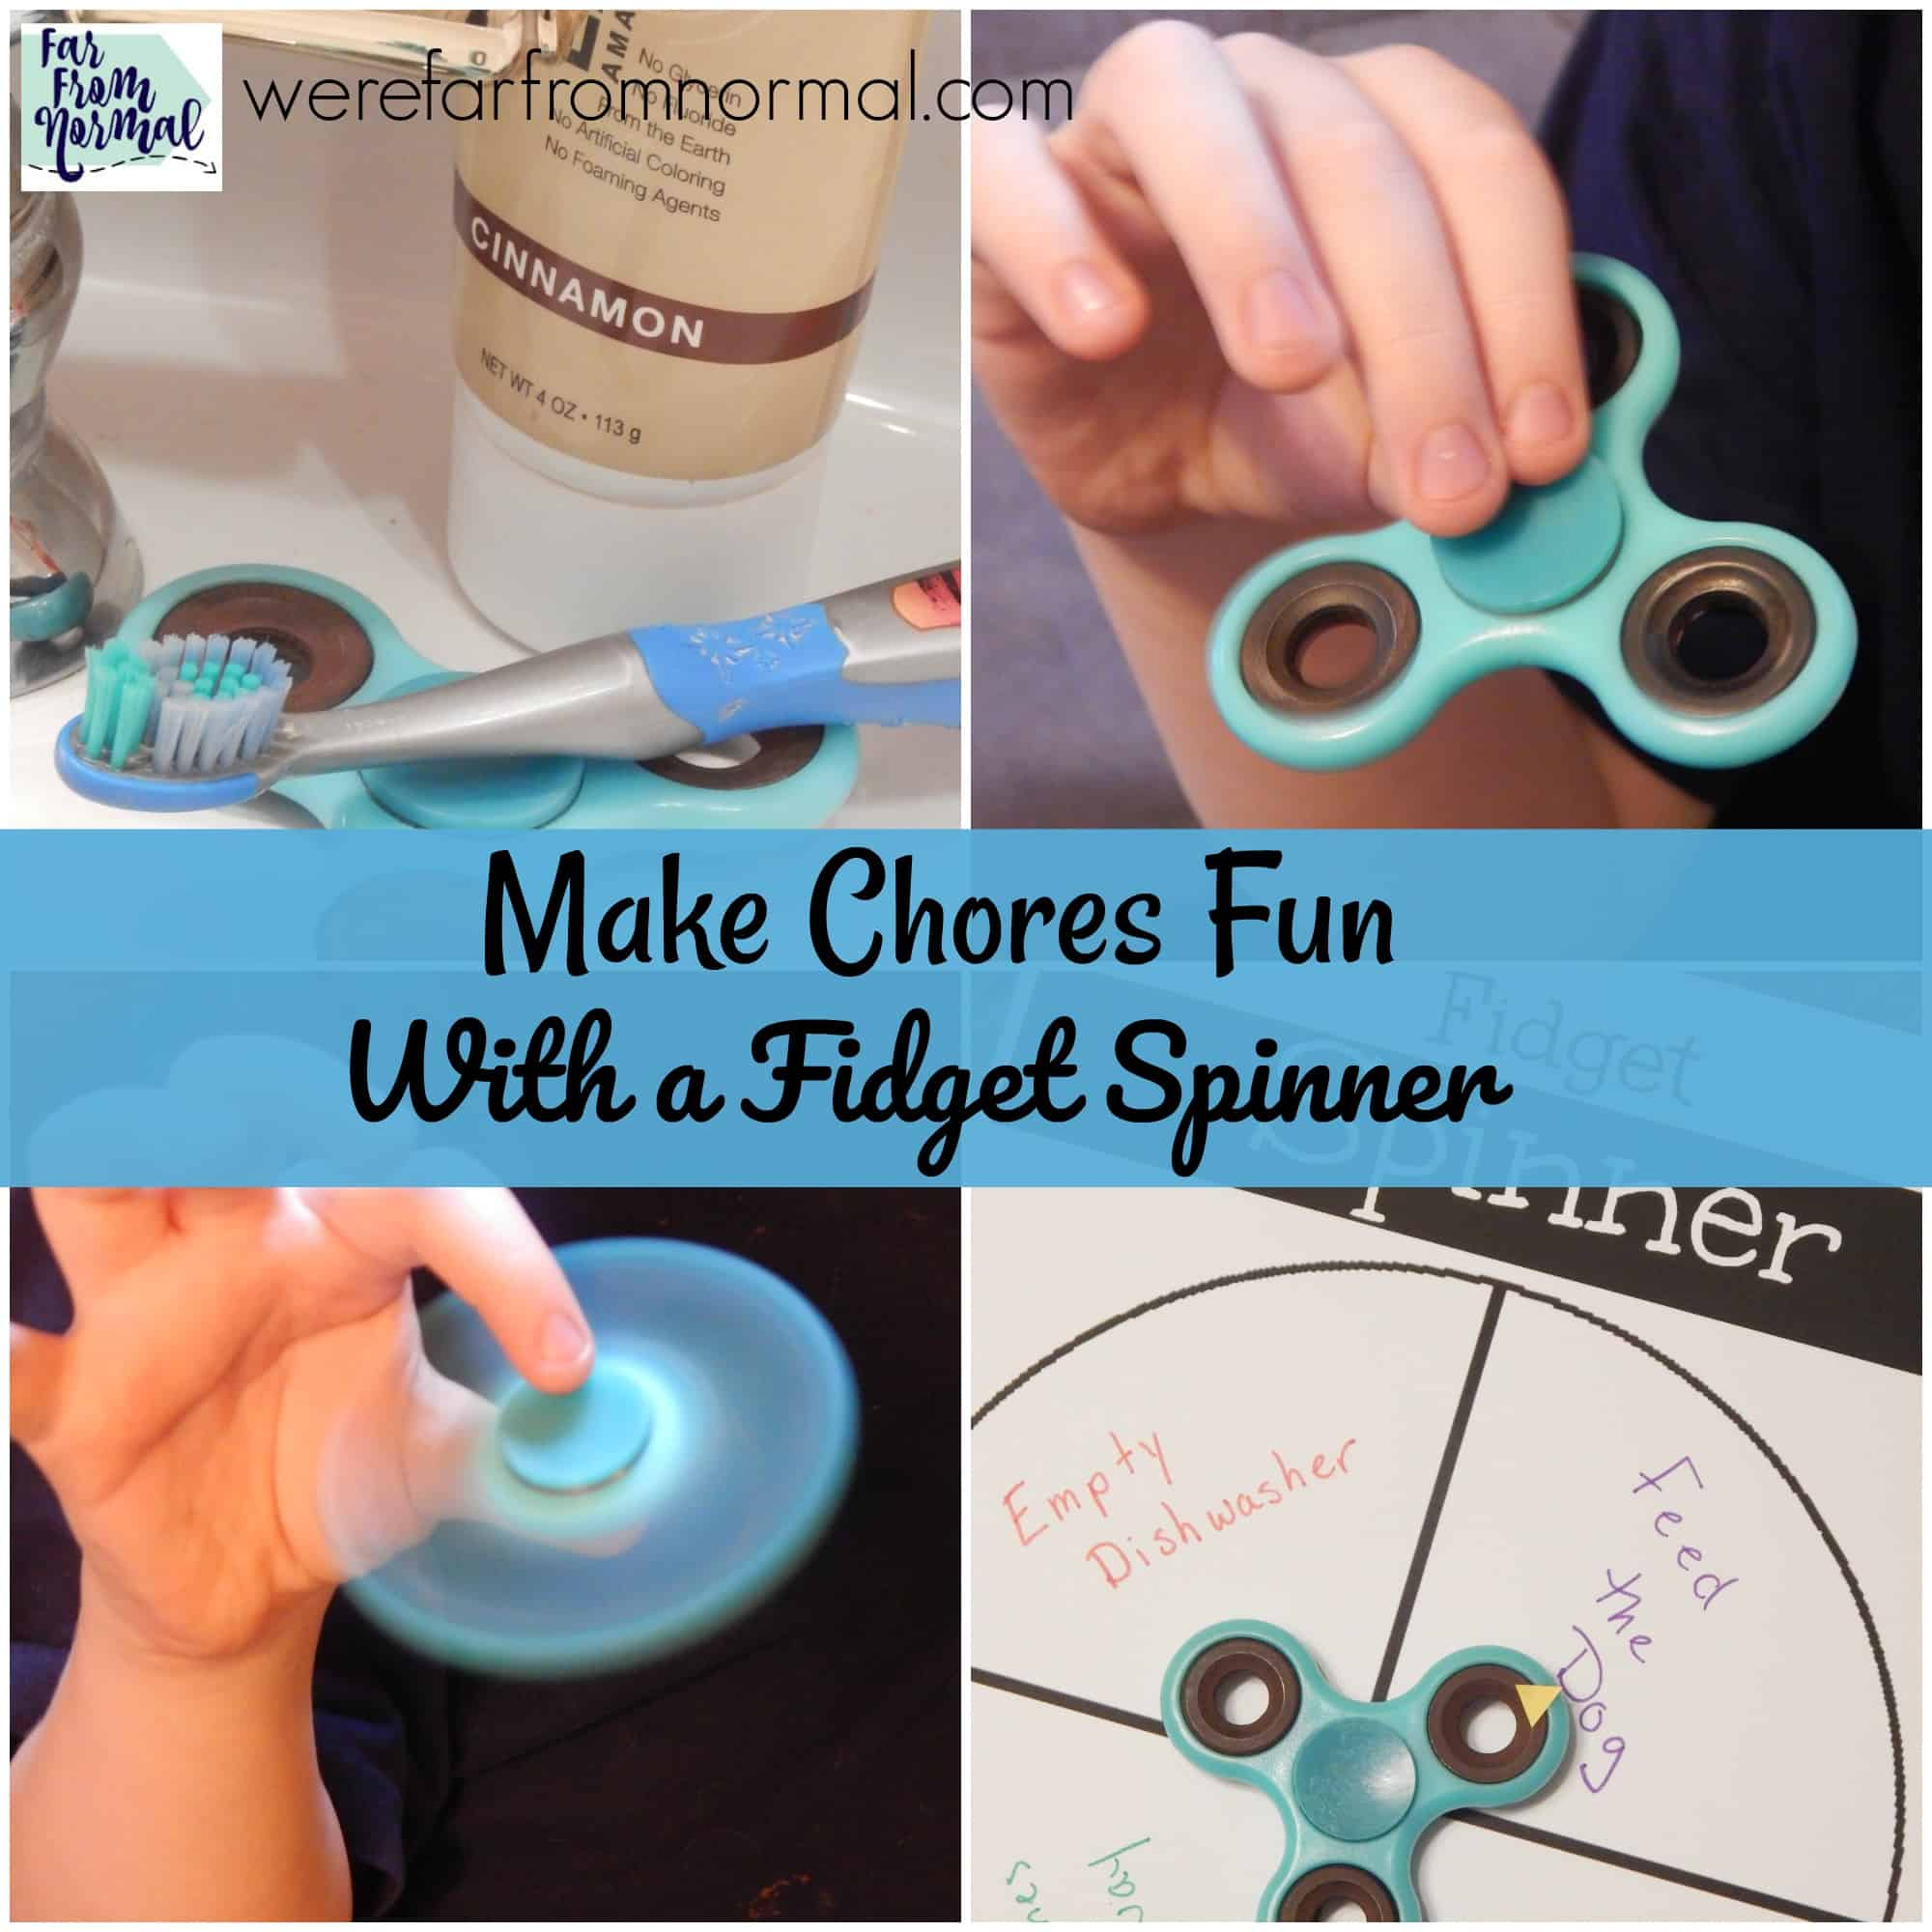 Make Chores Fun With a Fidget Spinner